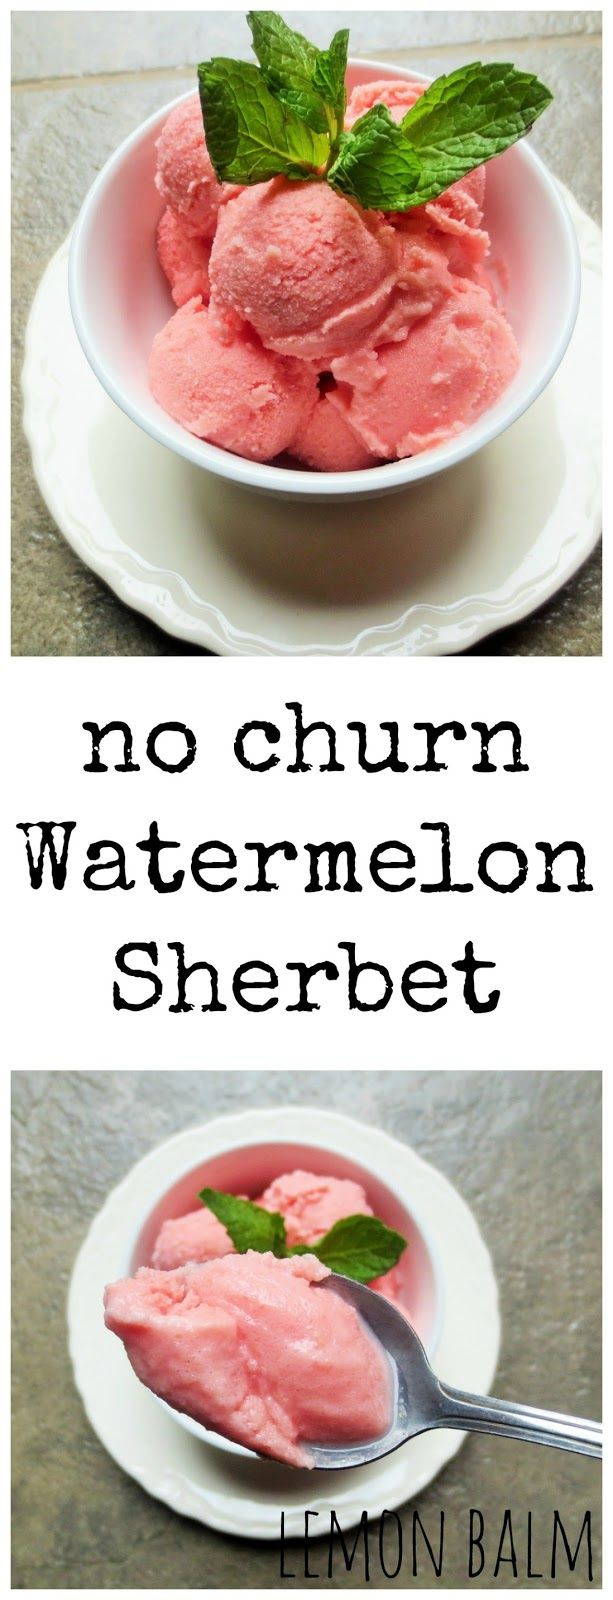 No Churn Watermelon Sherbet http://macthelm.blogspot.com/ This two ingredient No Churn Watermelon Sherbet is sweet and creamy!